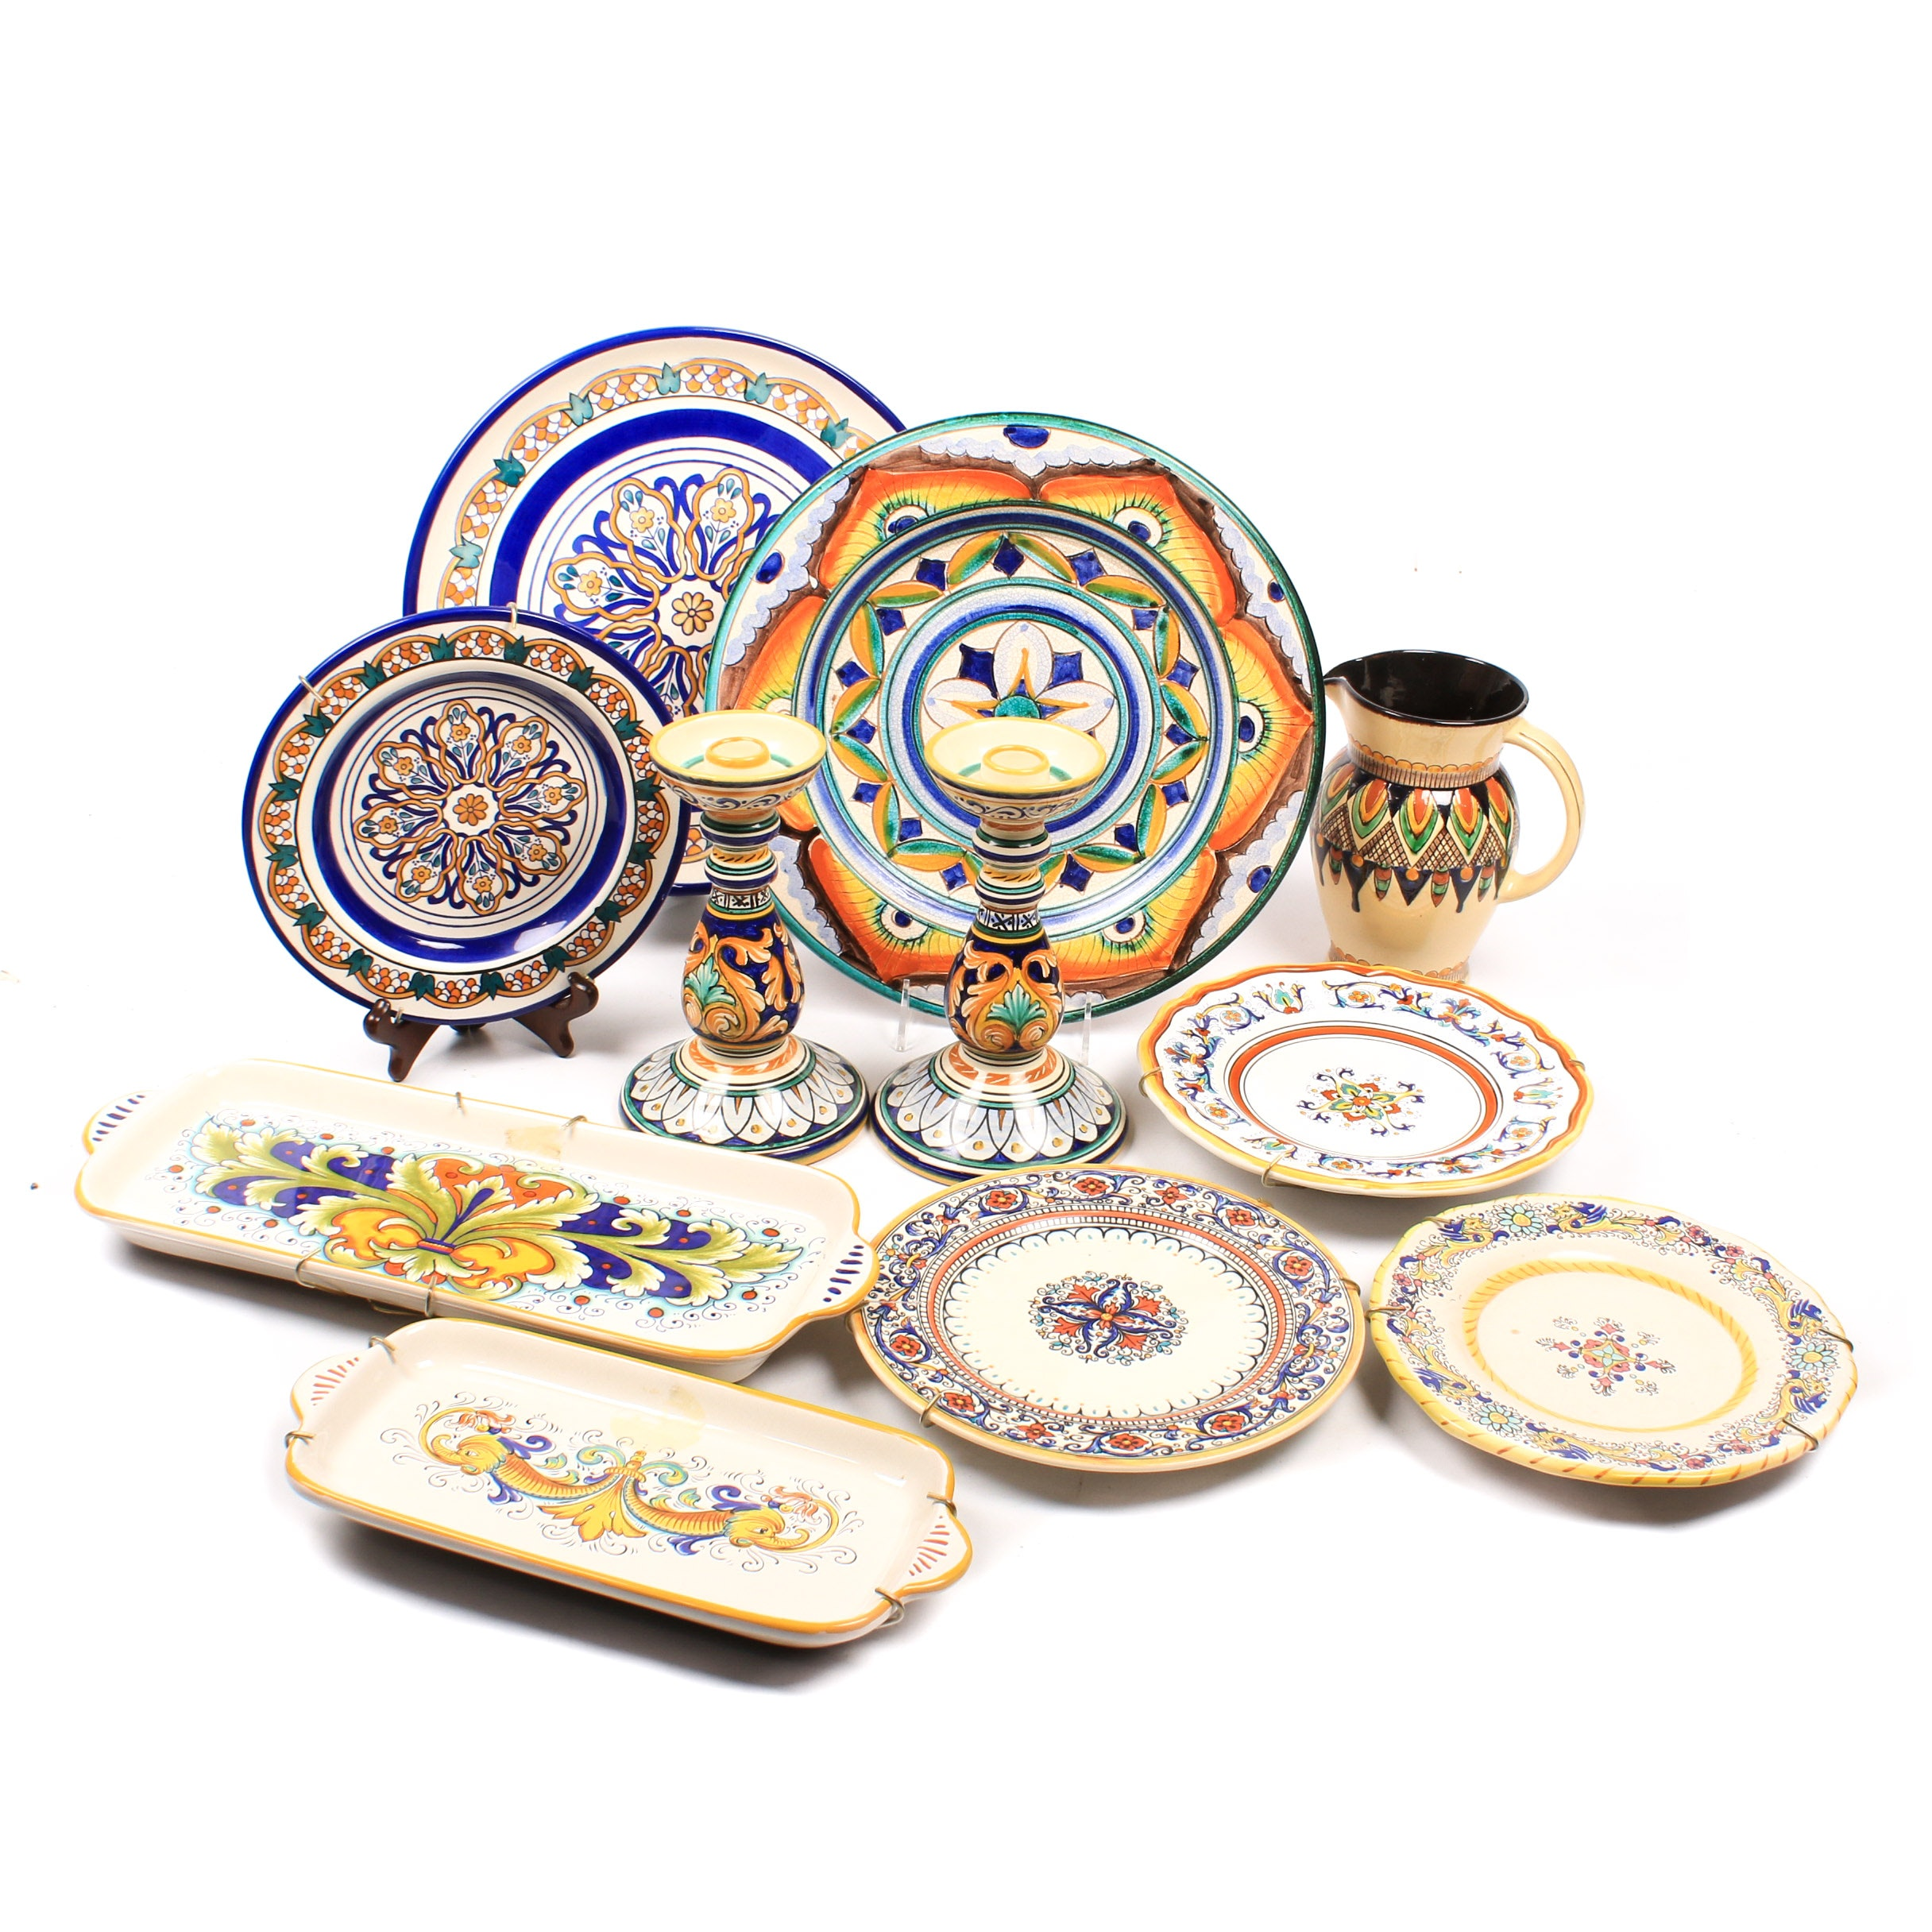 Italian and Deruta Art Pottery Collection